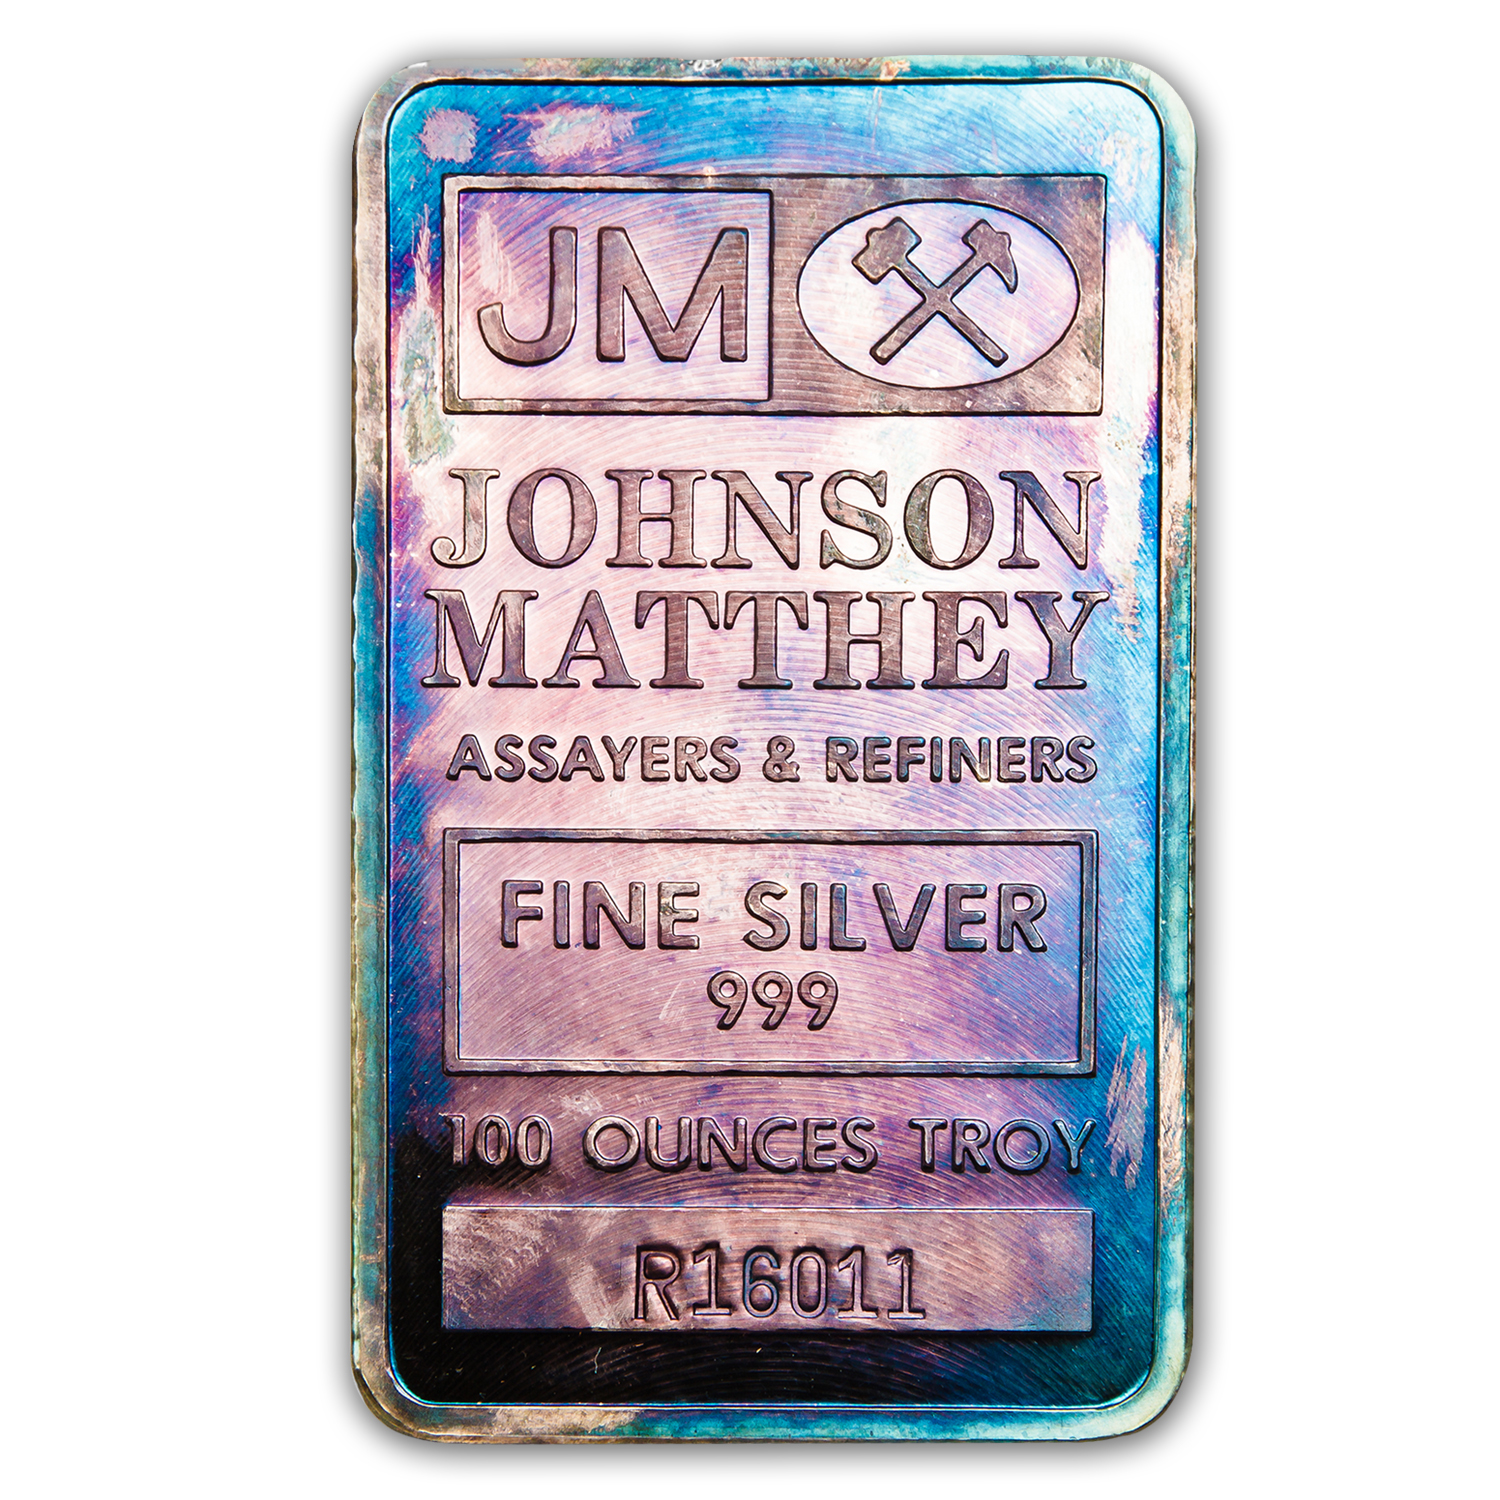 100 oz Silver Bar - Johnson Matthey (Pressed, Beautiful Toning)